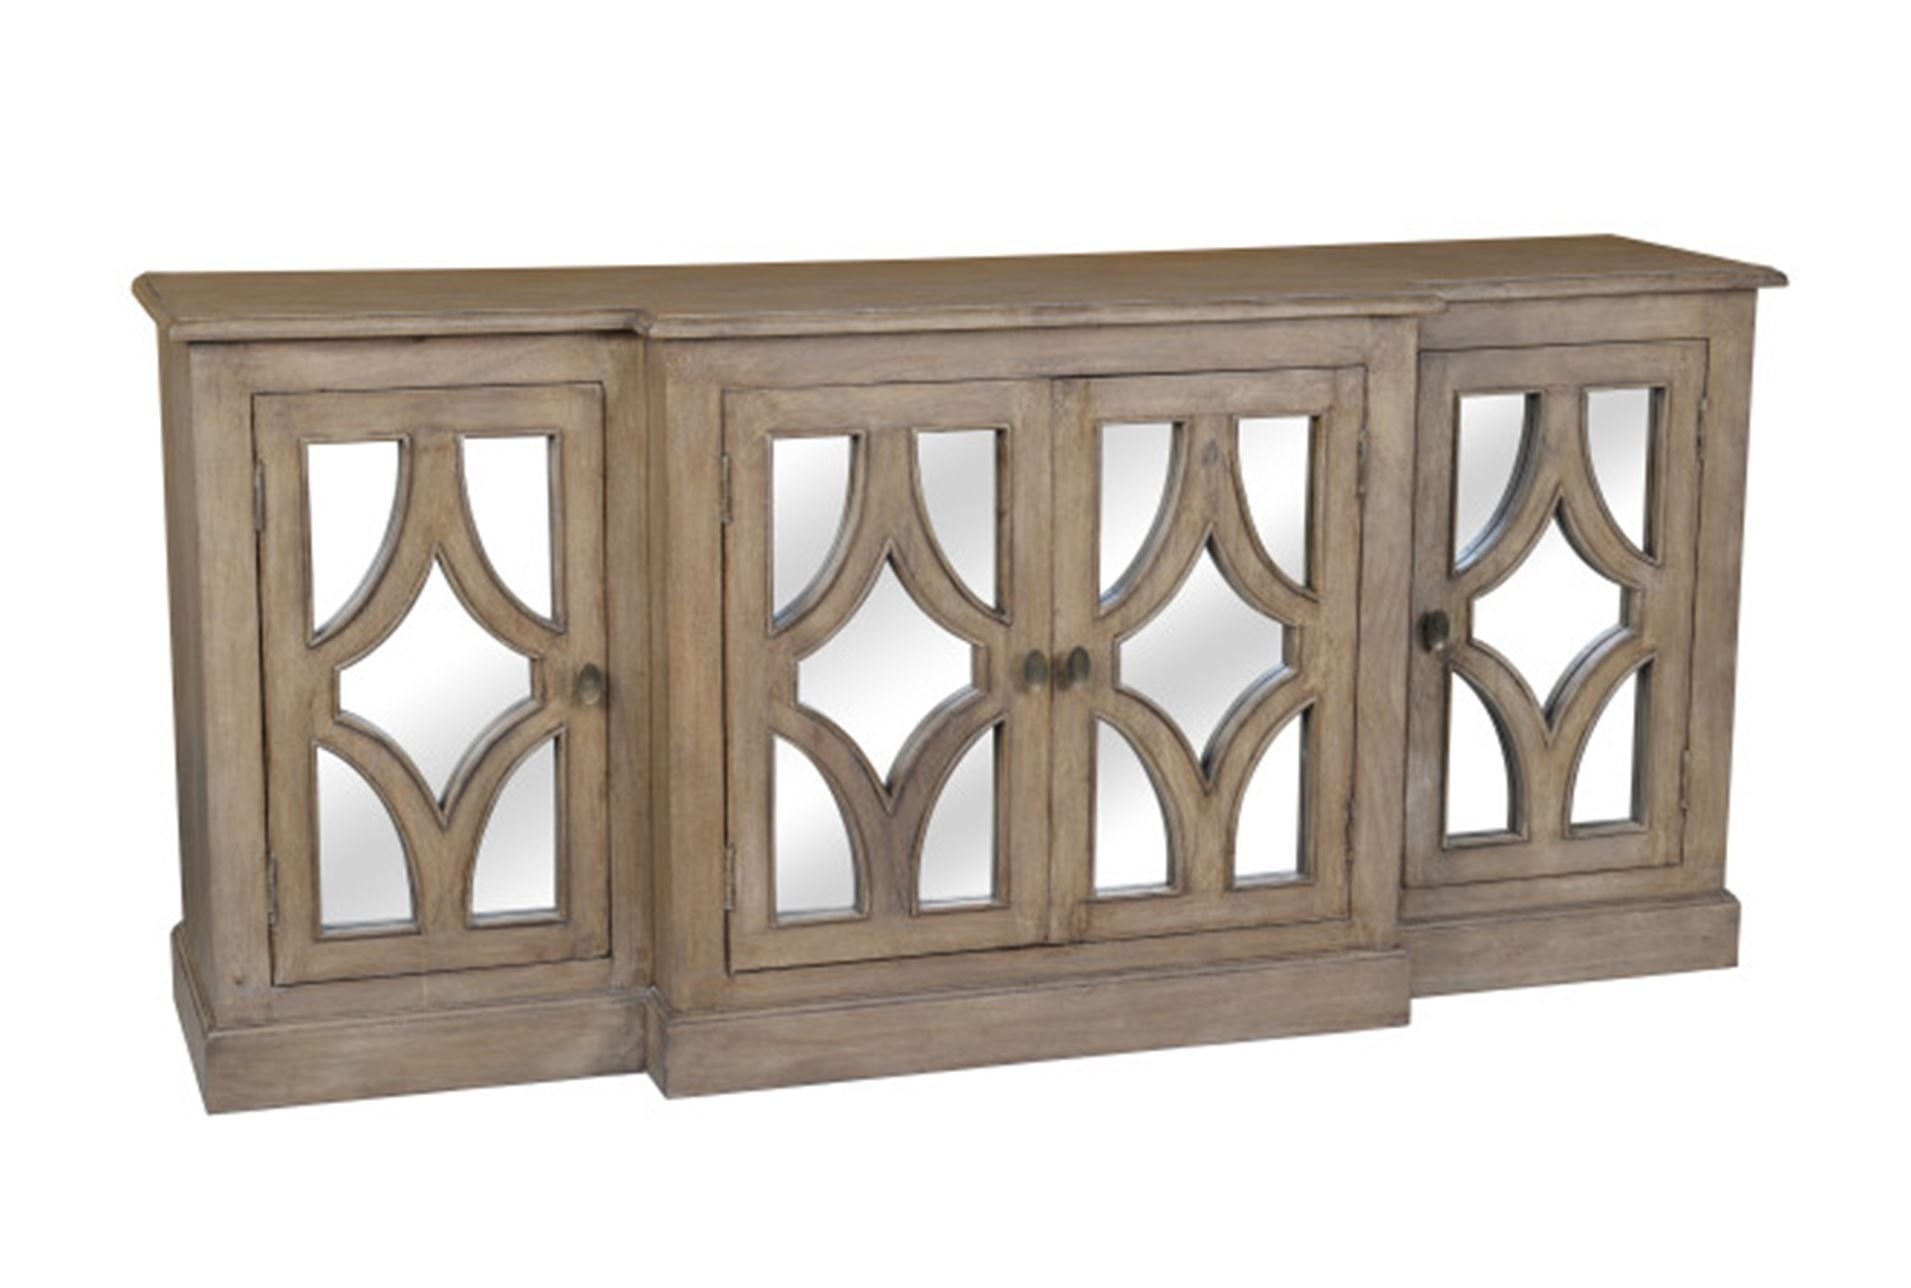 Otb Acacia Wood 4-Door Sideboard - Signature | Cherf | Pinterest for White Wash Carved Door Jumbo Sideboards (Image 23 of 30)